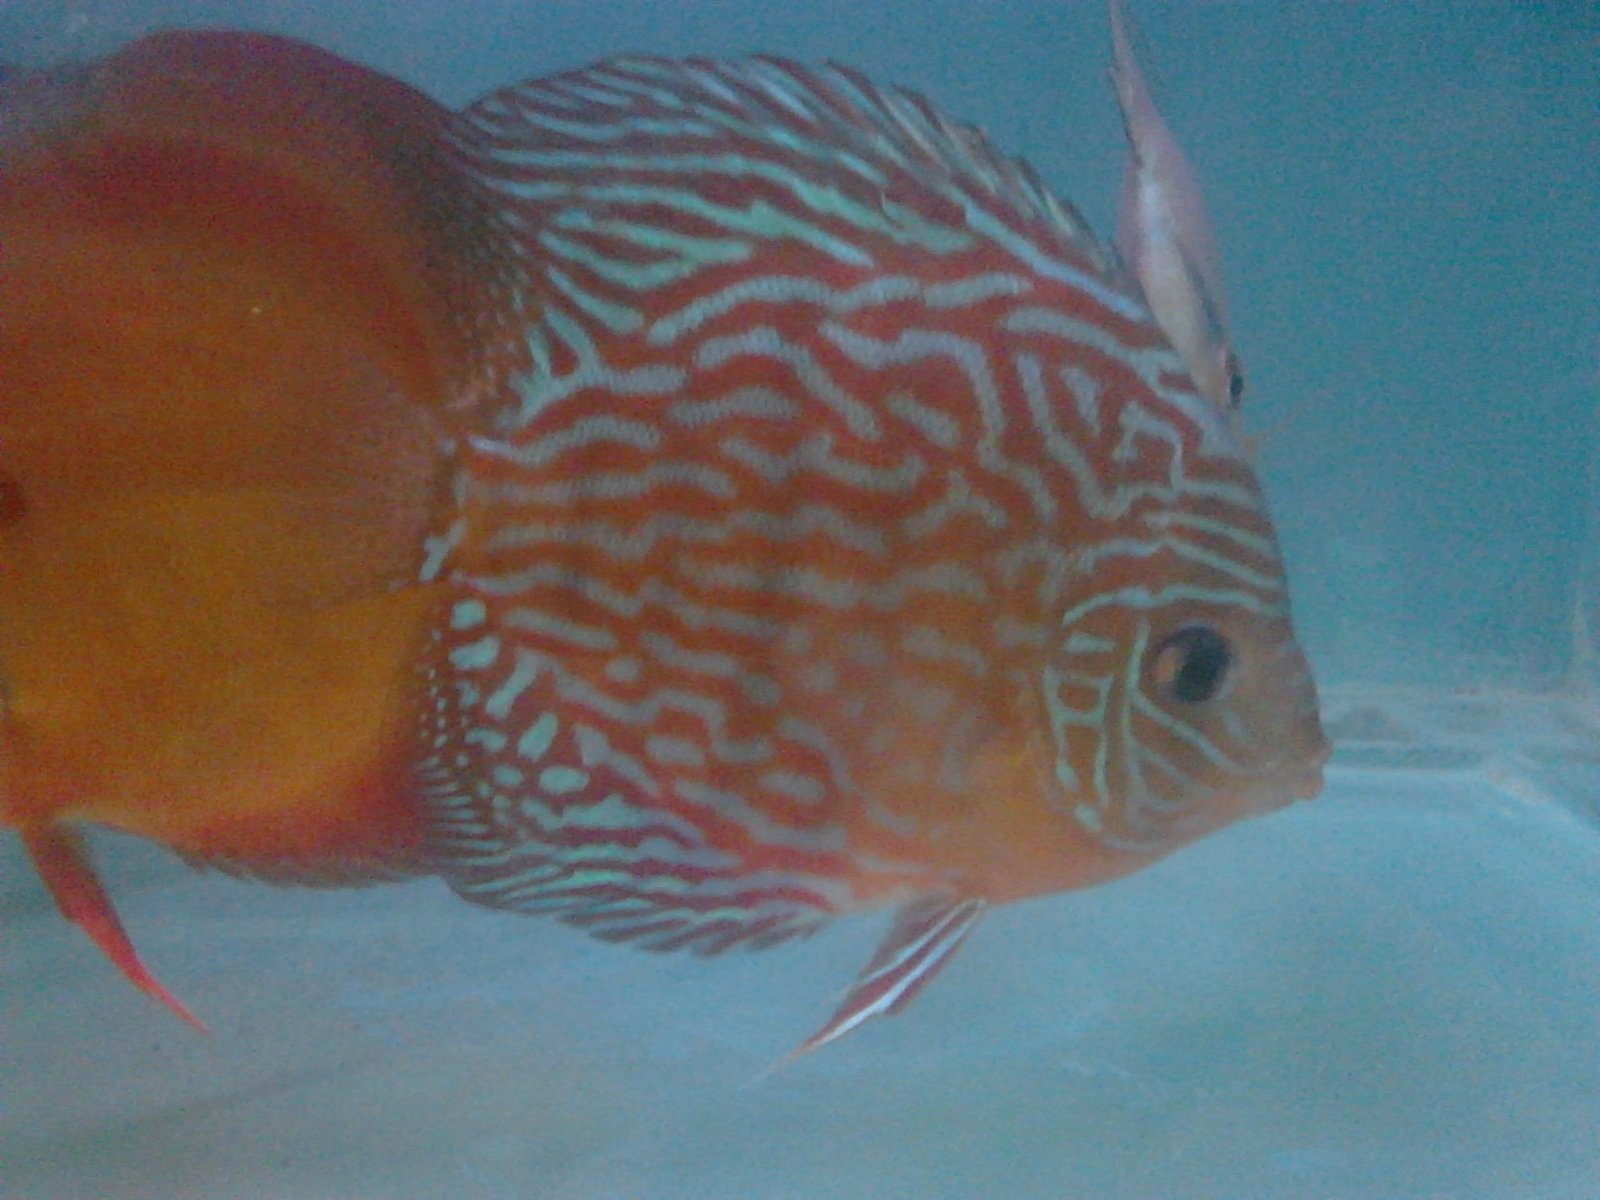 DISCUS FIS IN INDIA. 12months 15 days old TURQUIES DISCUS  | by Tirthabrata Panja